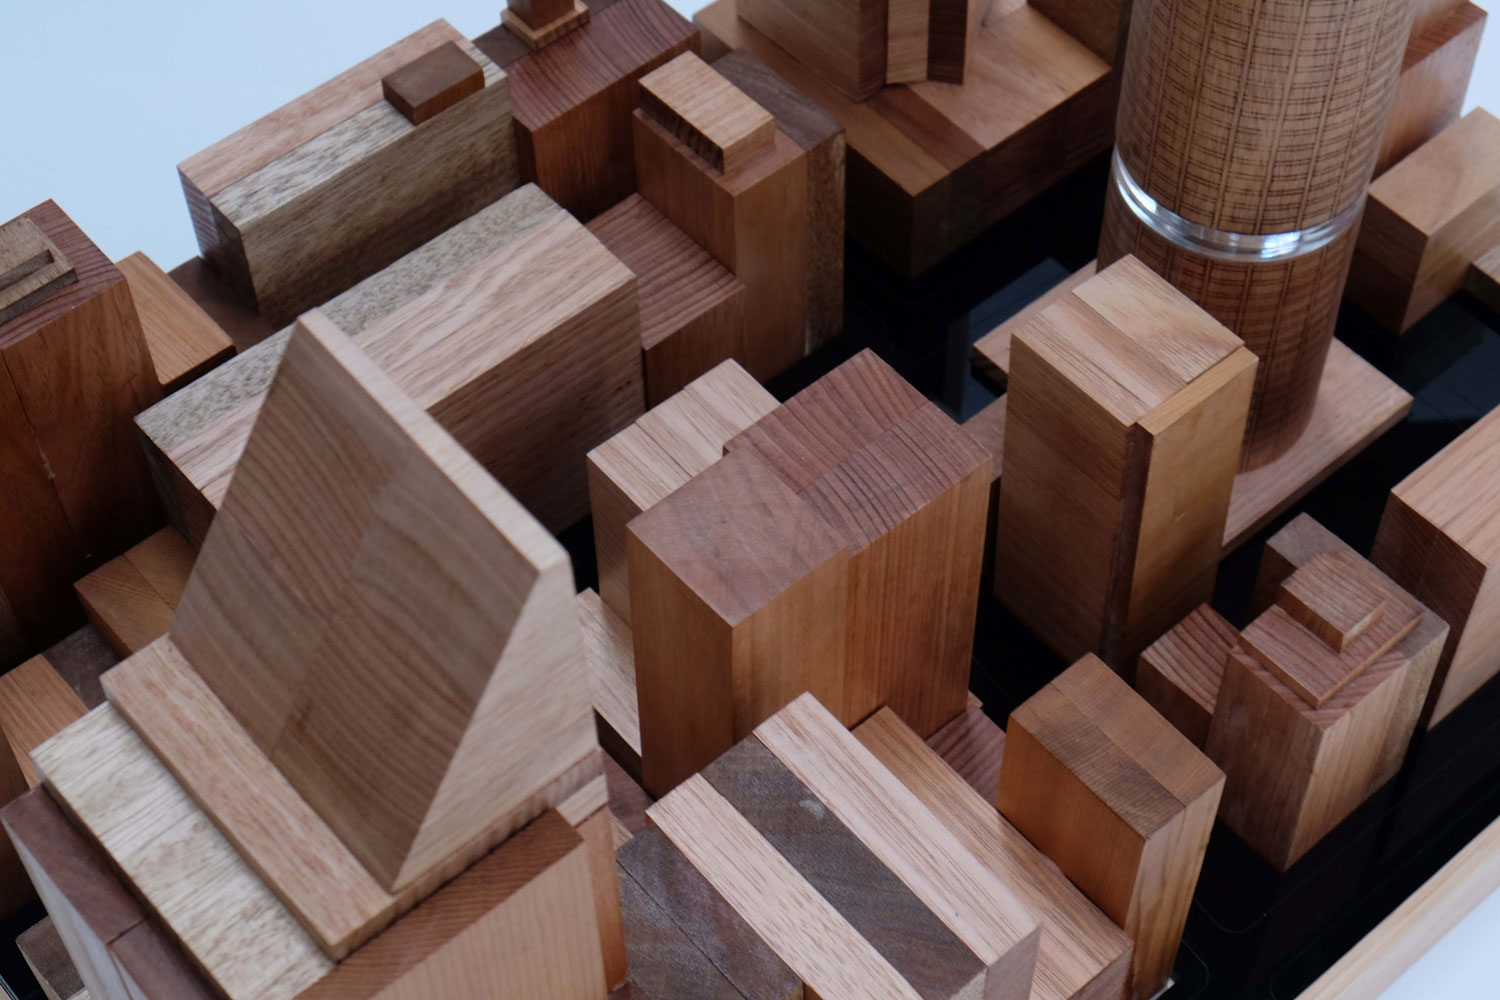 Woods Bagot architecture mode by Make Models   Yellowtrace